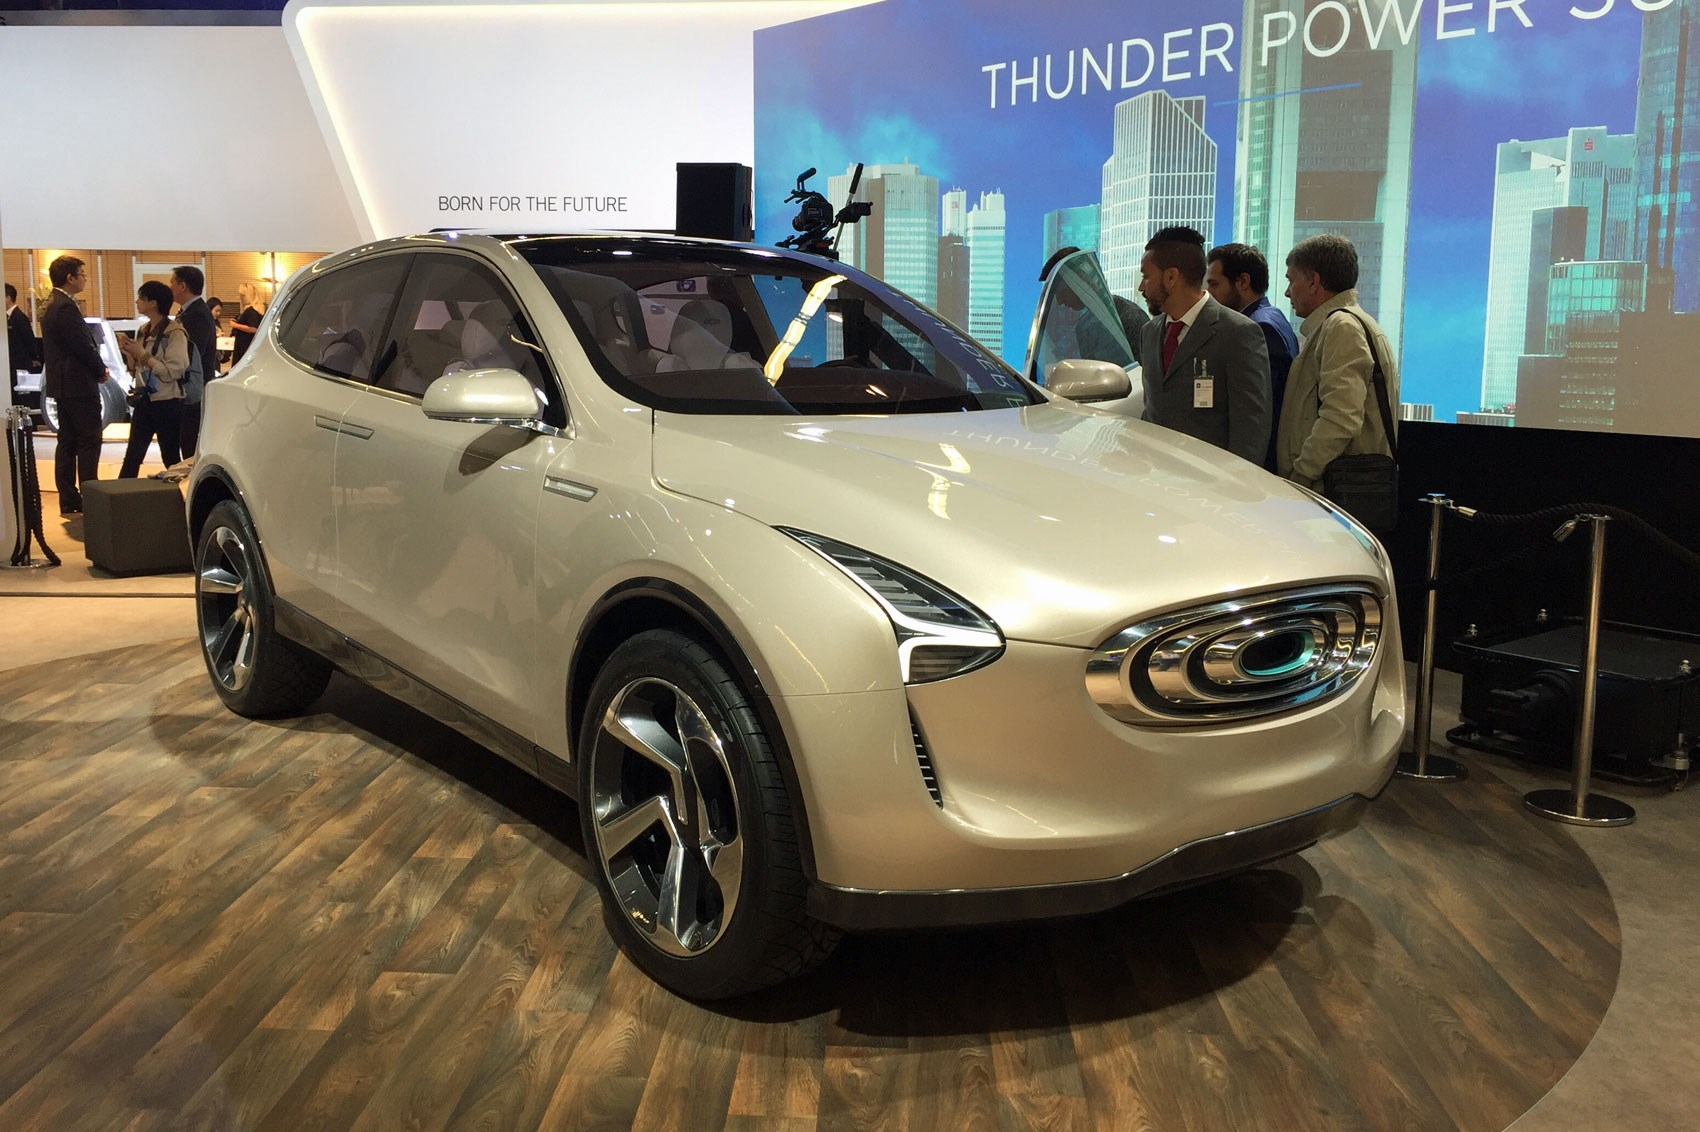 Thunder Suv A New All Electric Concept At Frankfurt 2017